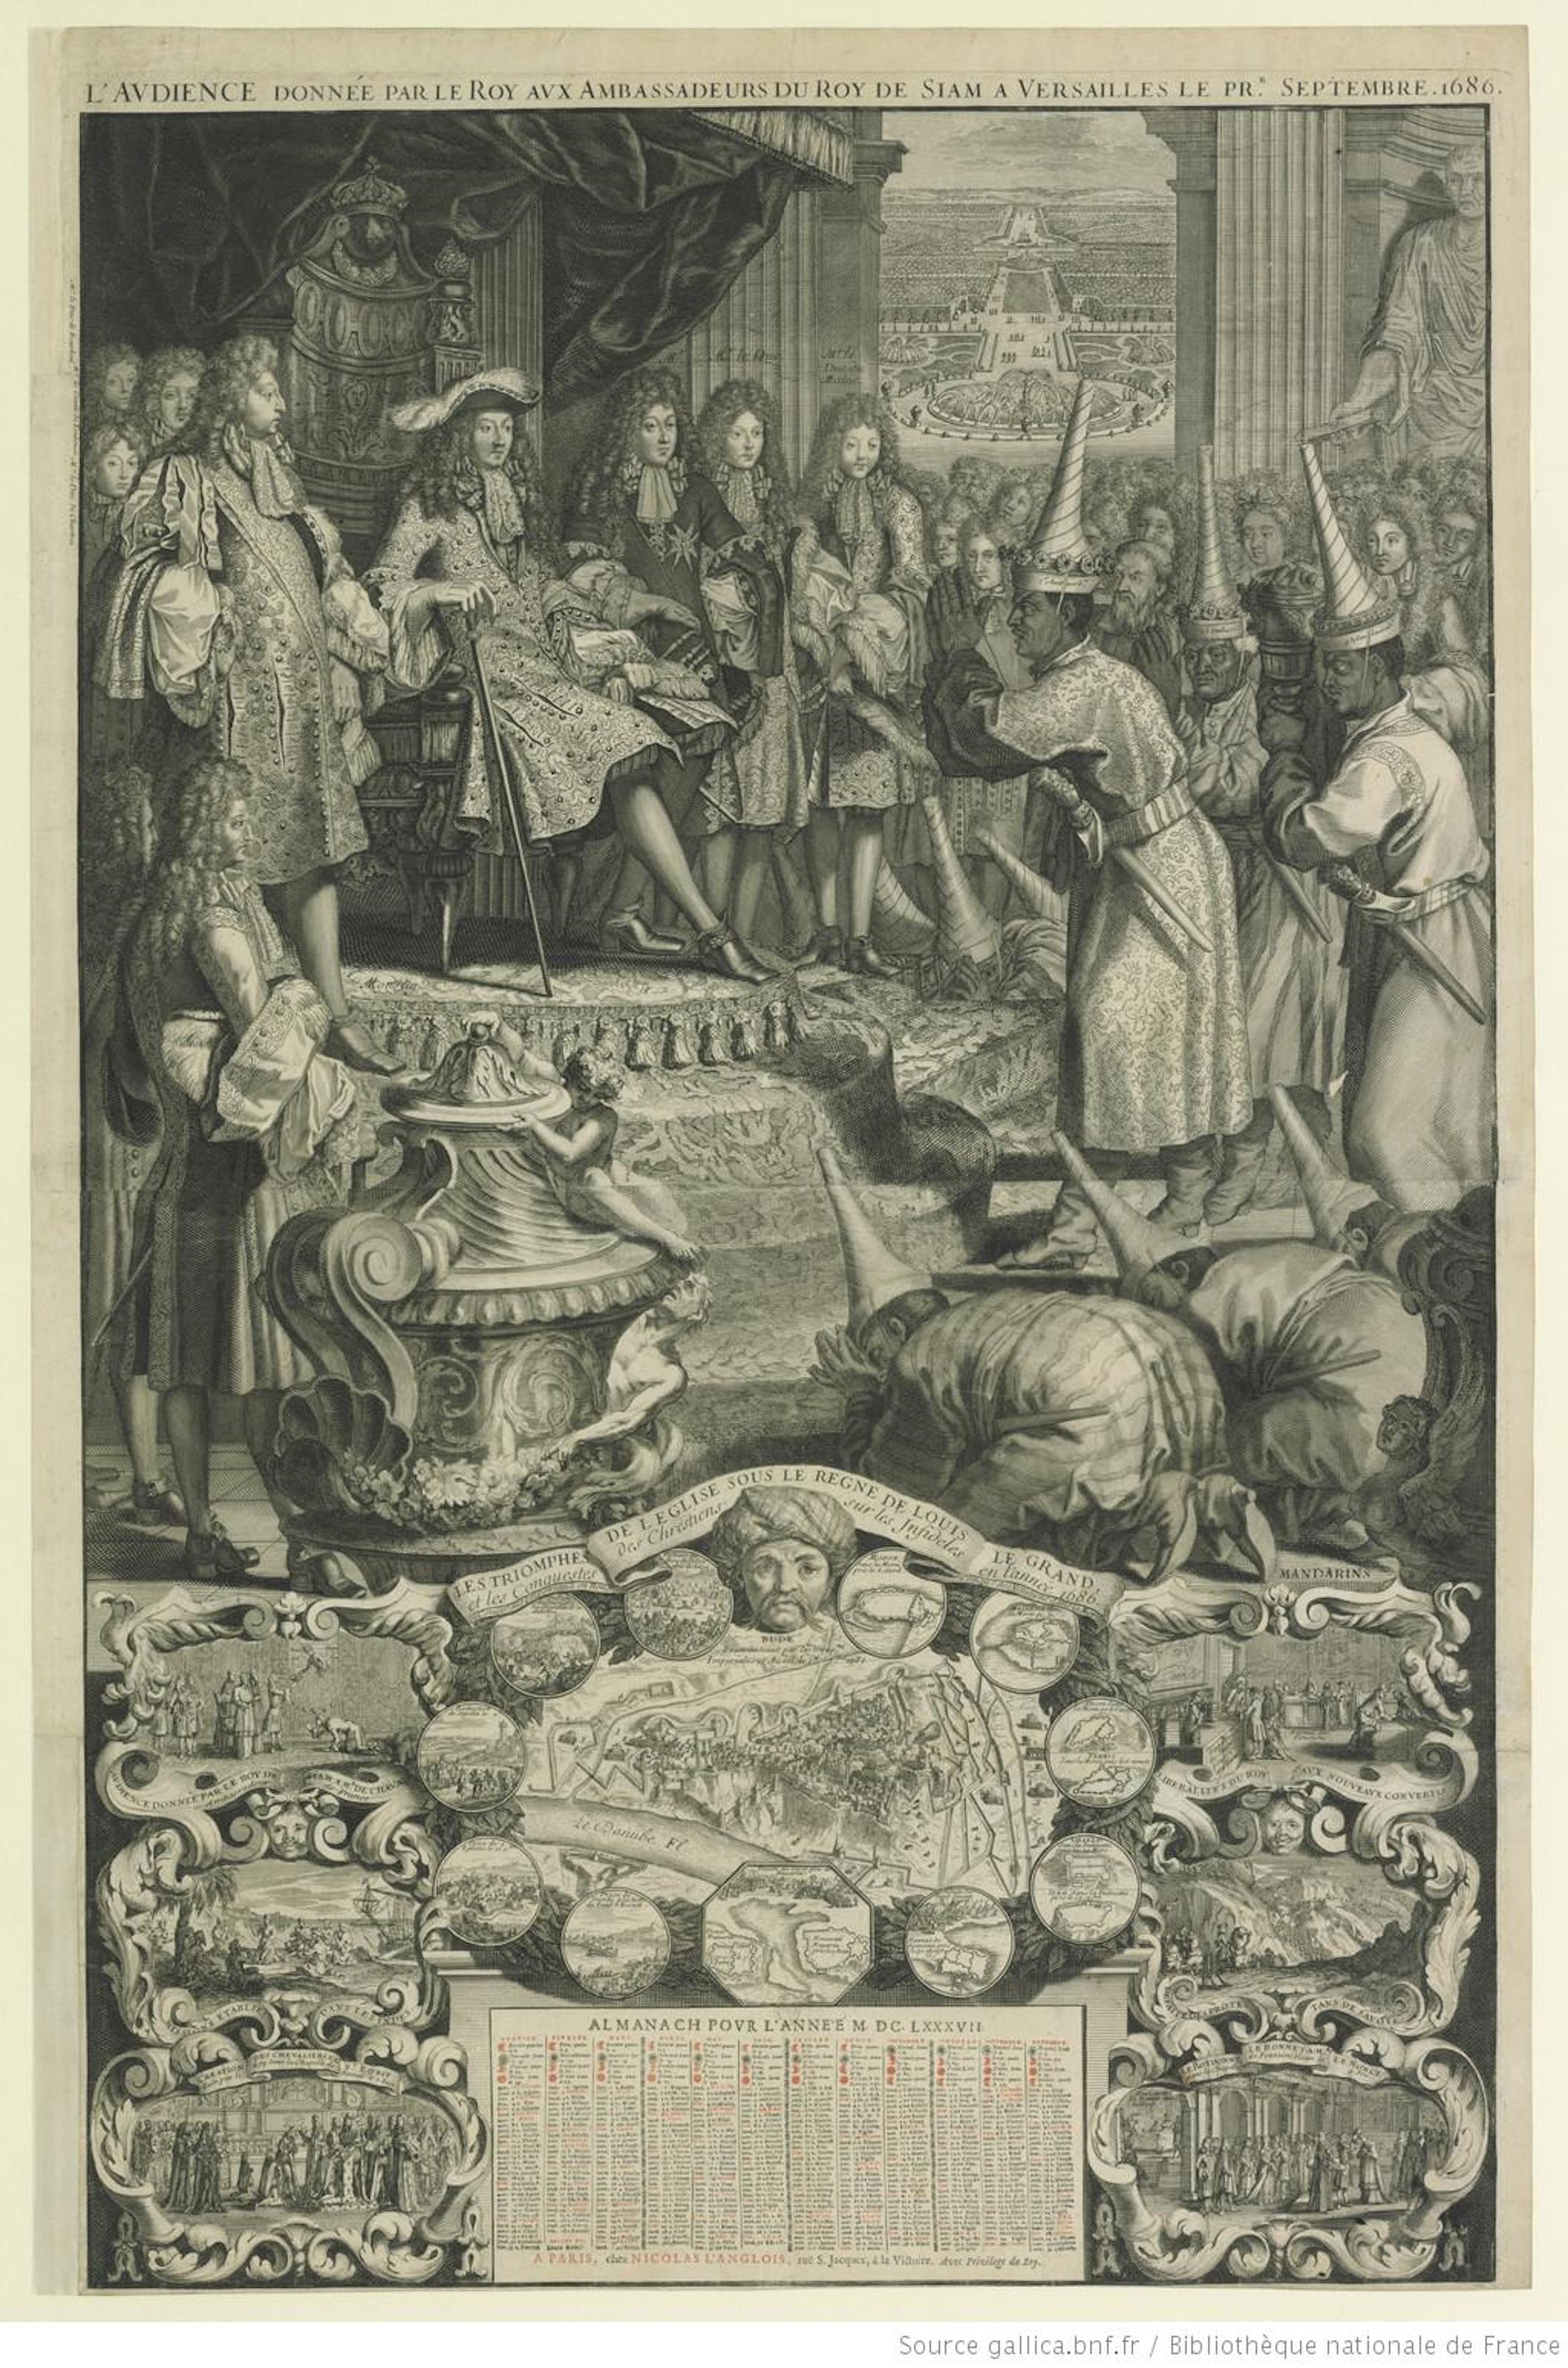 Fig. 6 : The Audience Given by the King to the Ambassadors of the King of Siam at Versailles on the first of September, 1686, published by Nicolas Langlois, 1687. Engraving and etching, 86.6 x 56.3 cm. Paris: Bibliothèque Nationale de France, Estampes, Collection Michel Hennin, inv. 5551. Reproduced with permission.